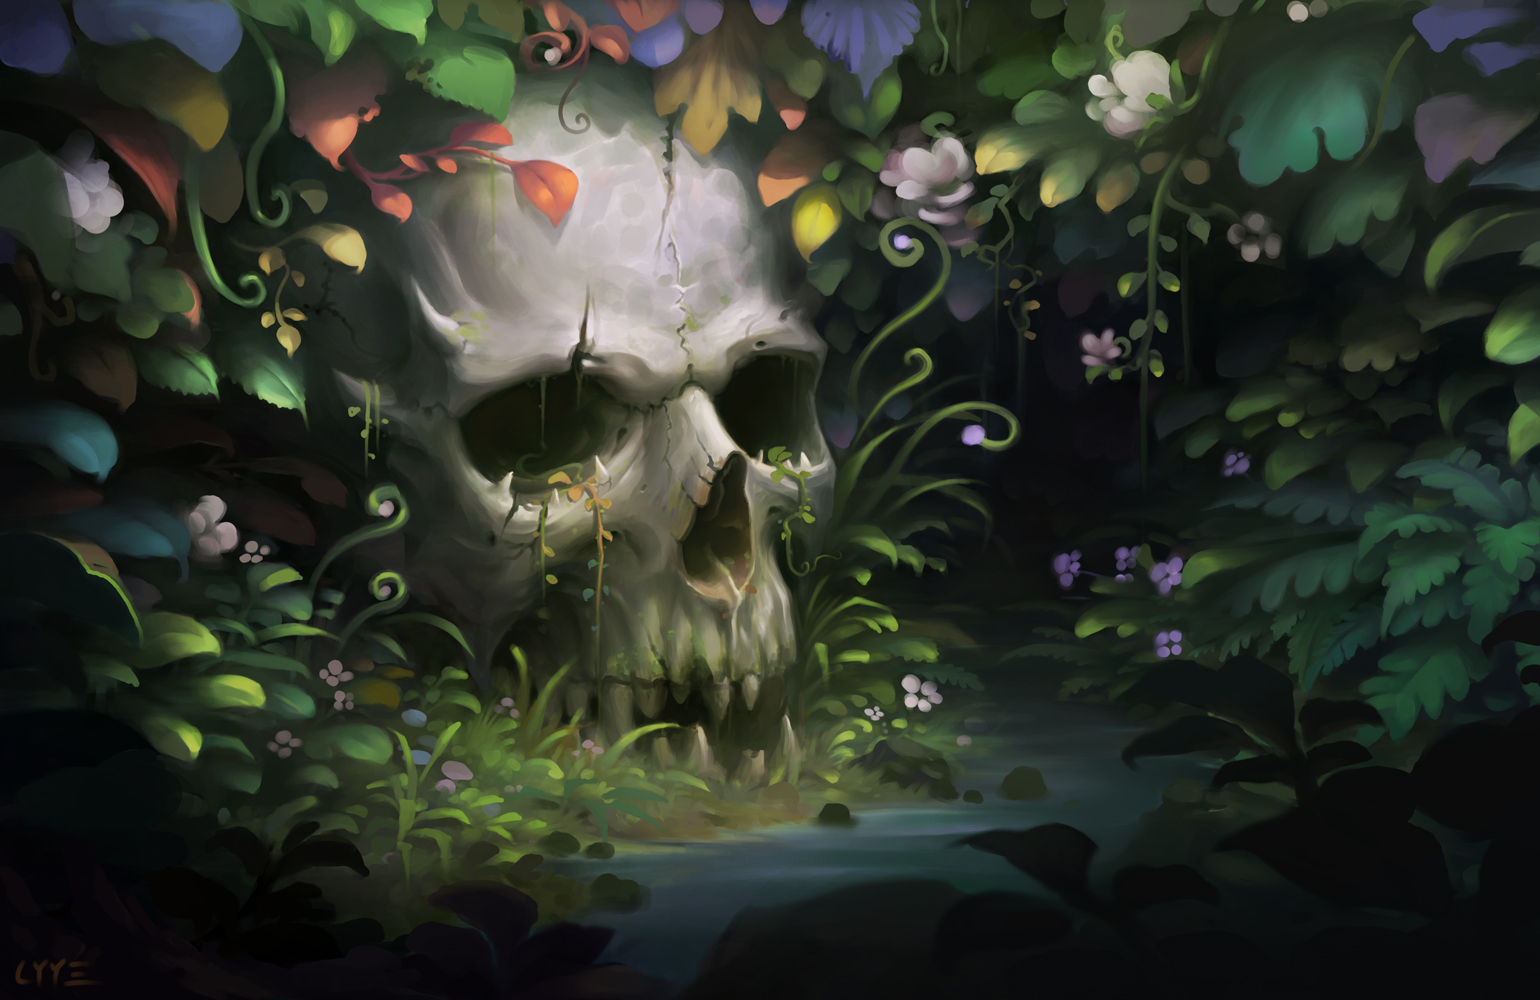 1540x1000_15680____2d_illustration_fantasy_skull_flowers_picture_image_digital_art.jpg